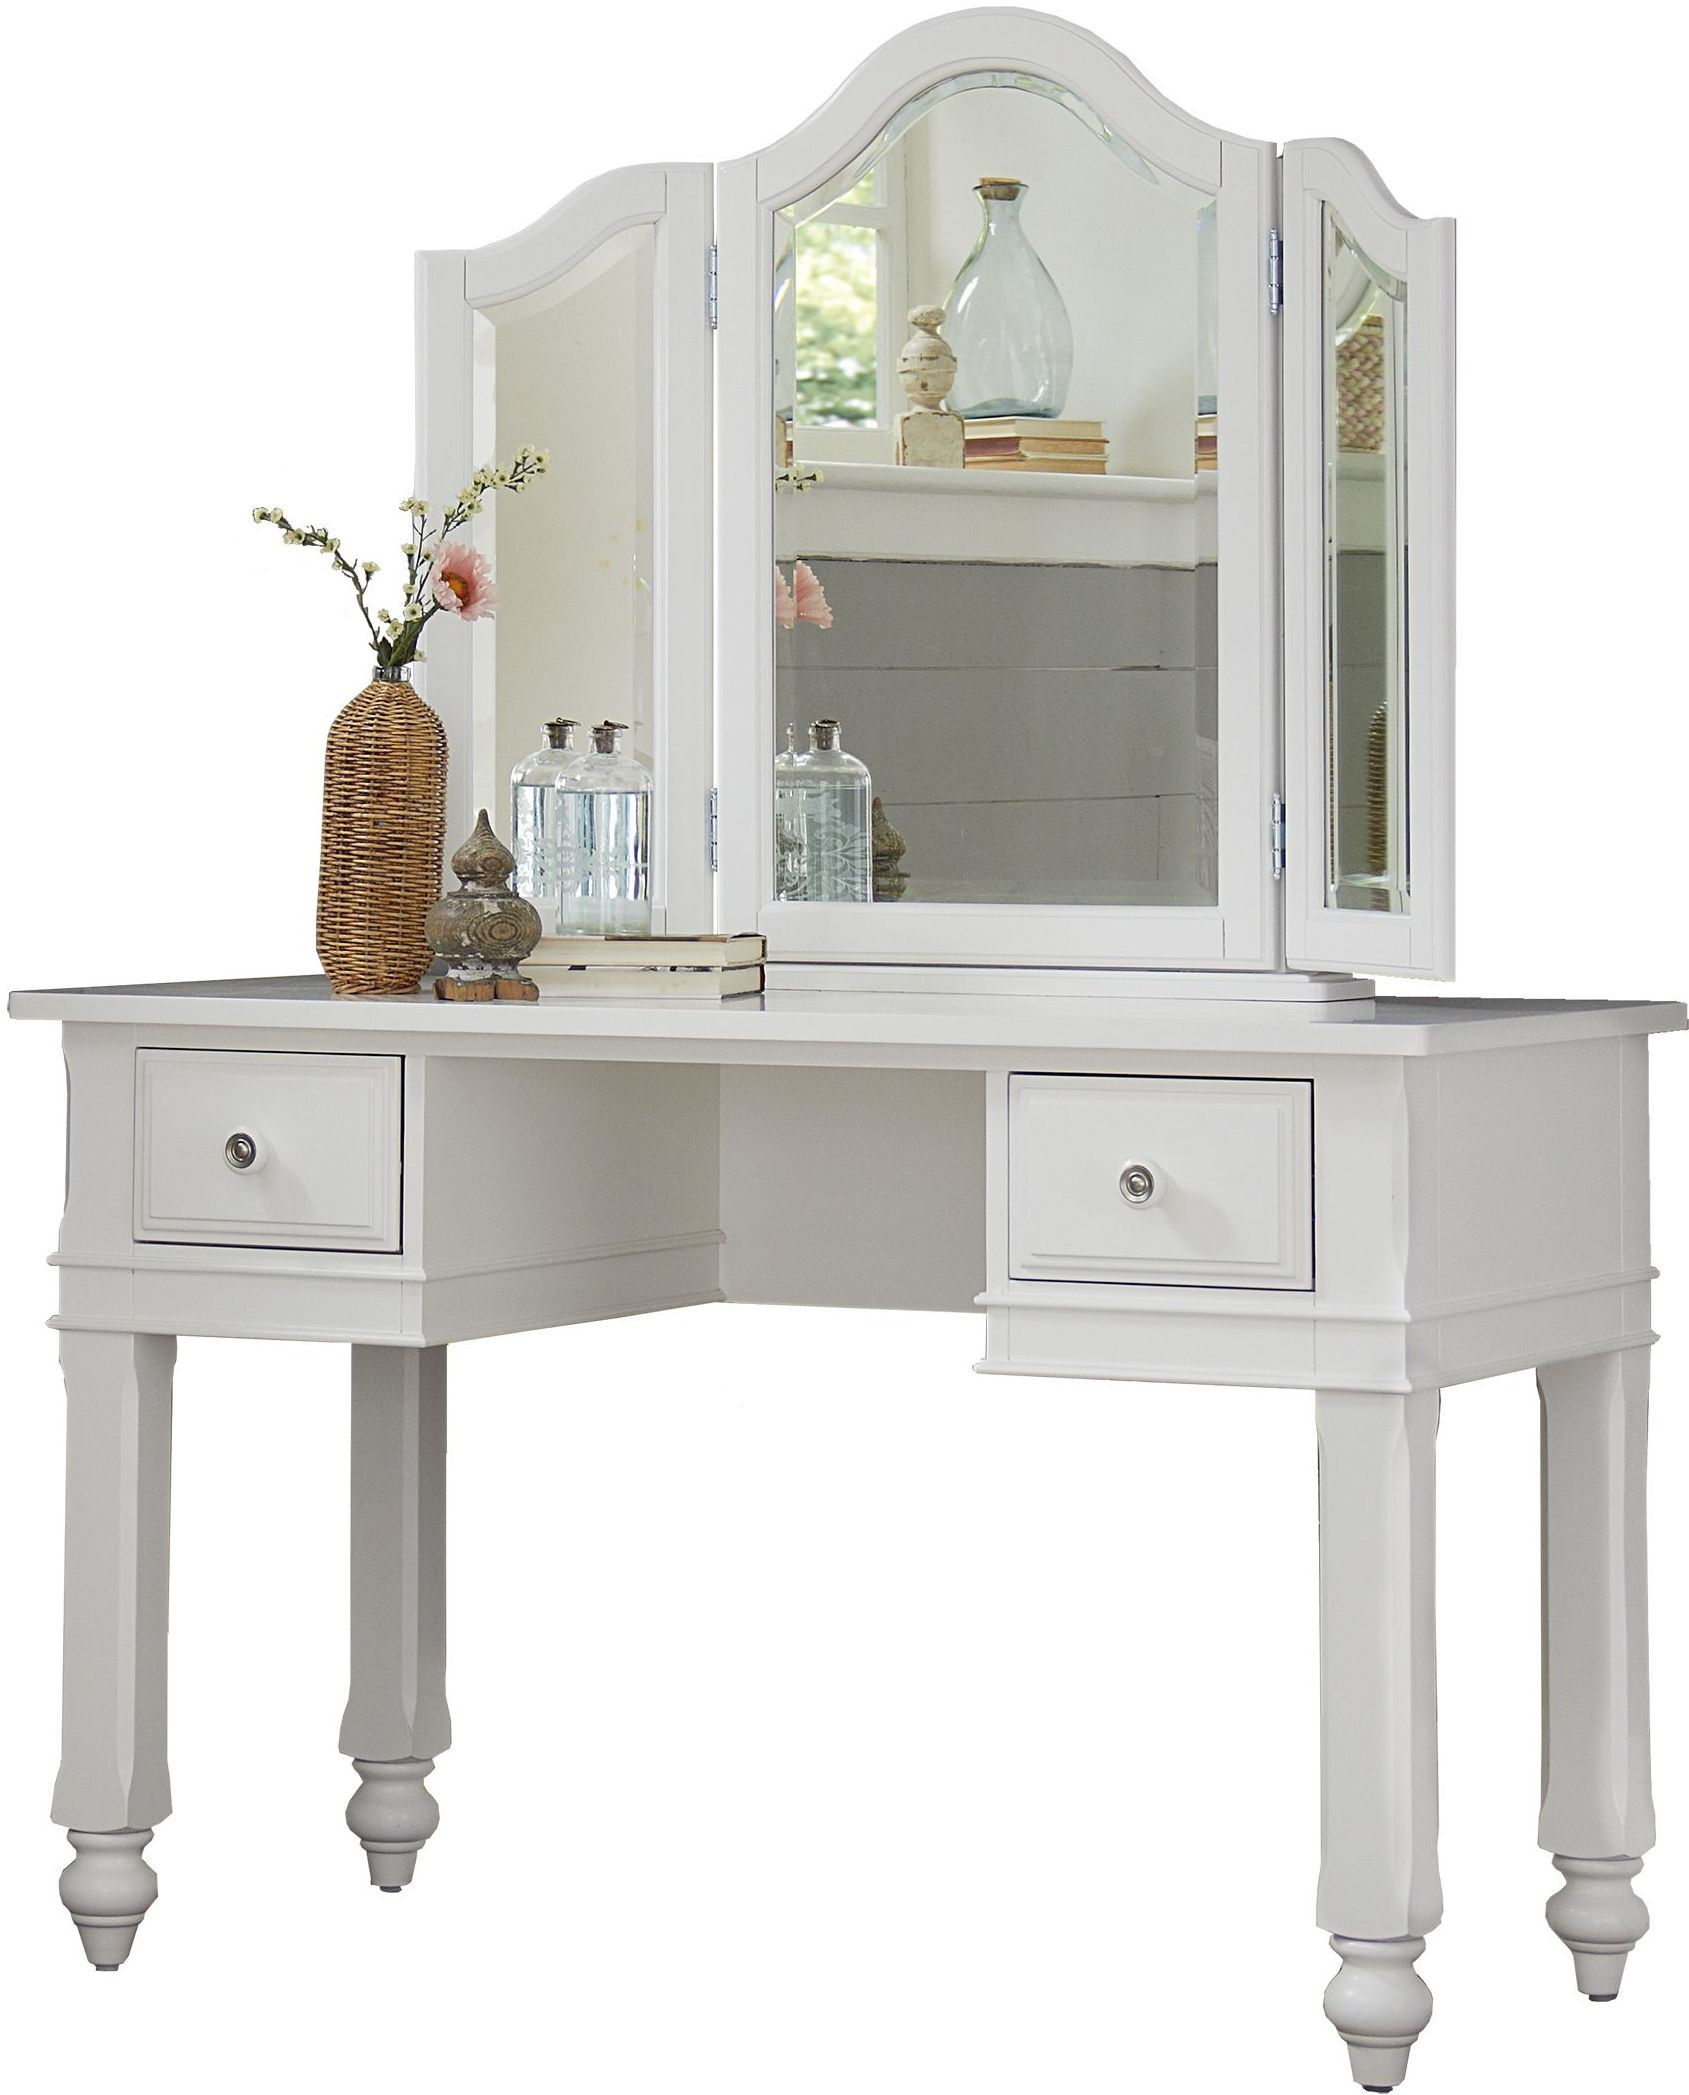 Lake House White Writing Desk with Vanity Mirror from NE